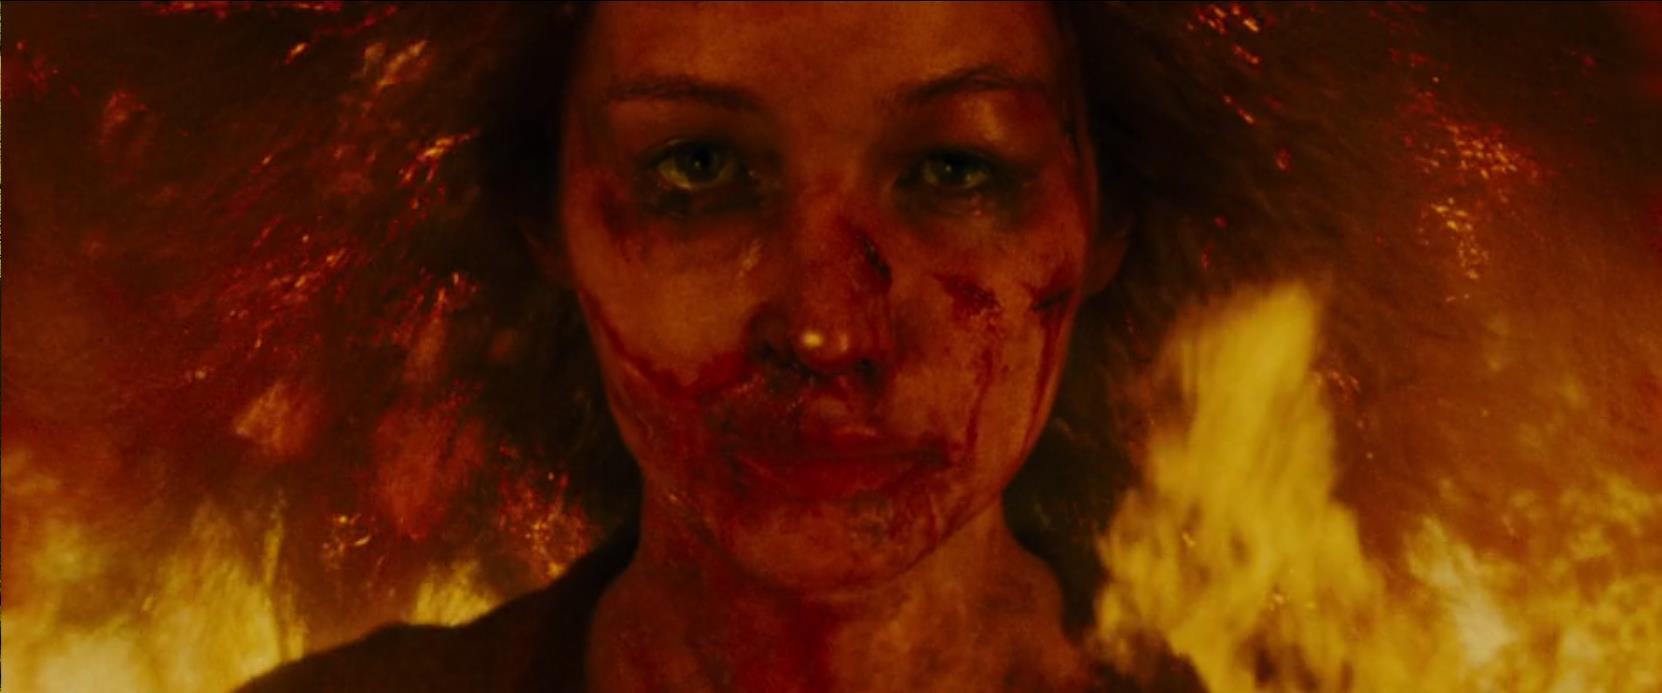 Figure #3: mother's (Jennifer Lawrence) self-immolation